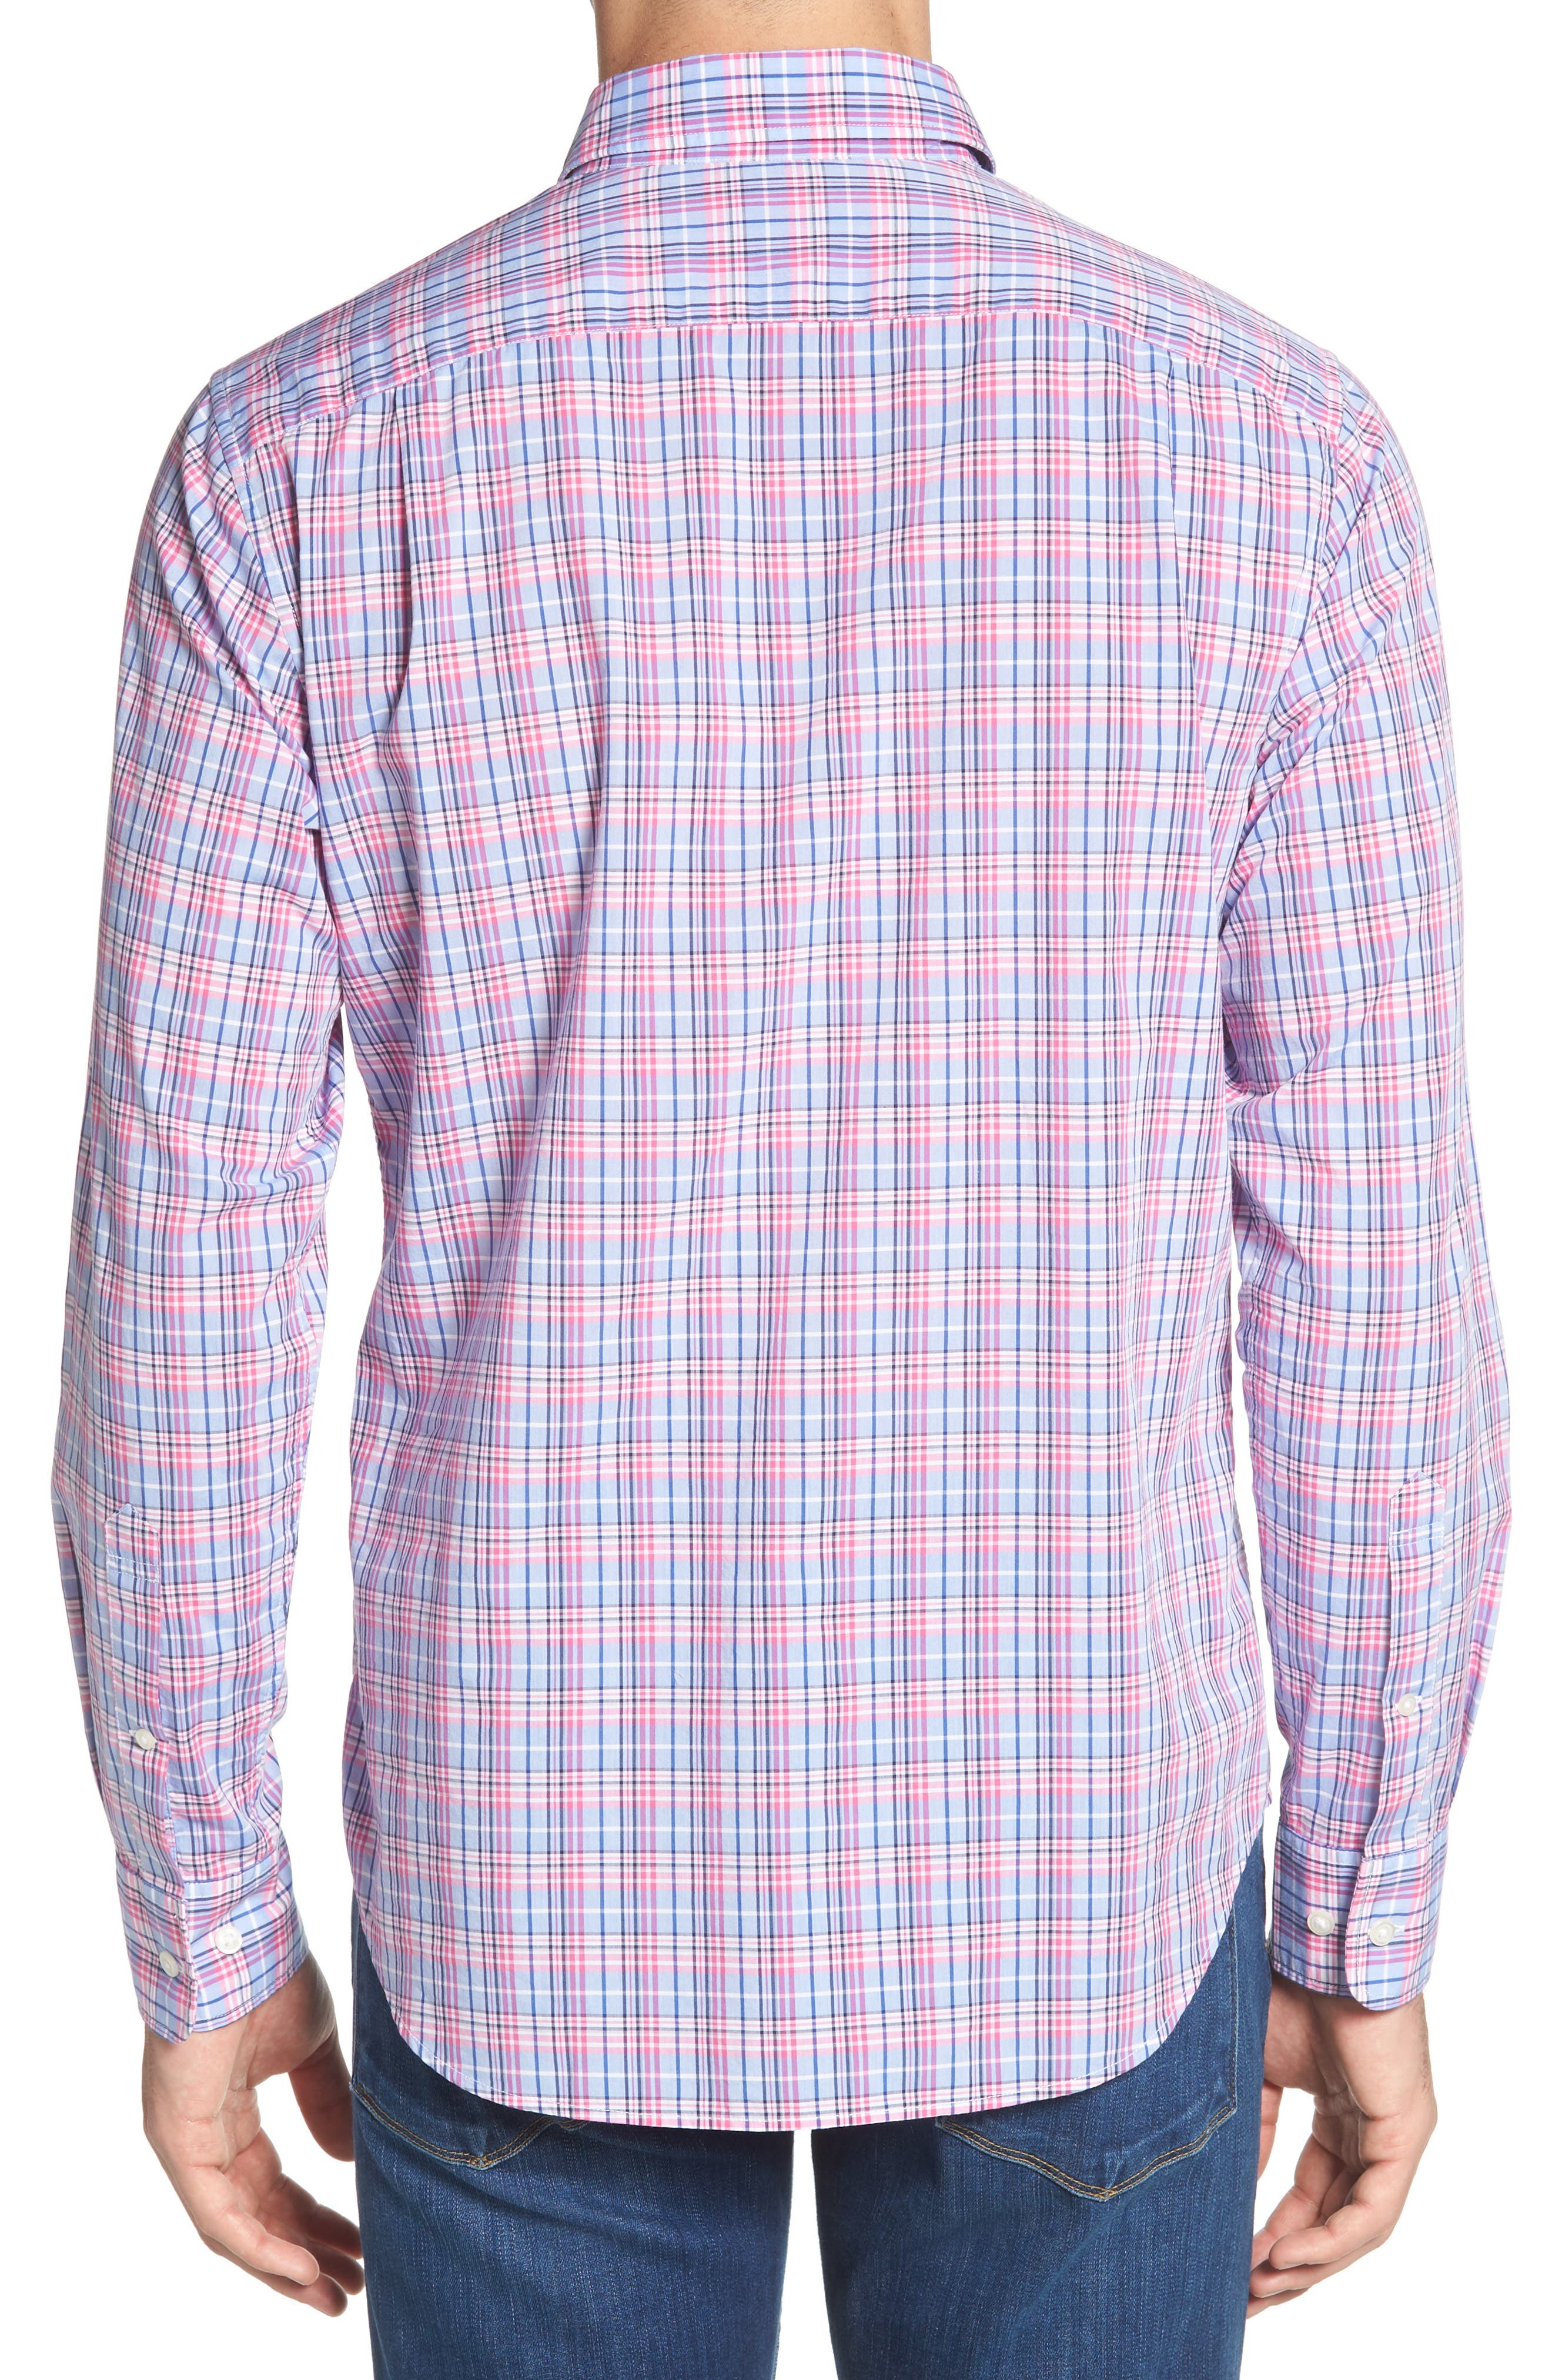 Summerweight Slim Fit Plaid Sport Shirt,                             Alternate thumbnail 3, color,                             Basswood Plaid - Pink Rocket